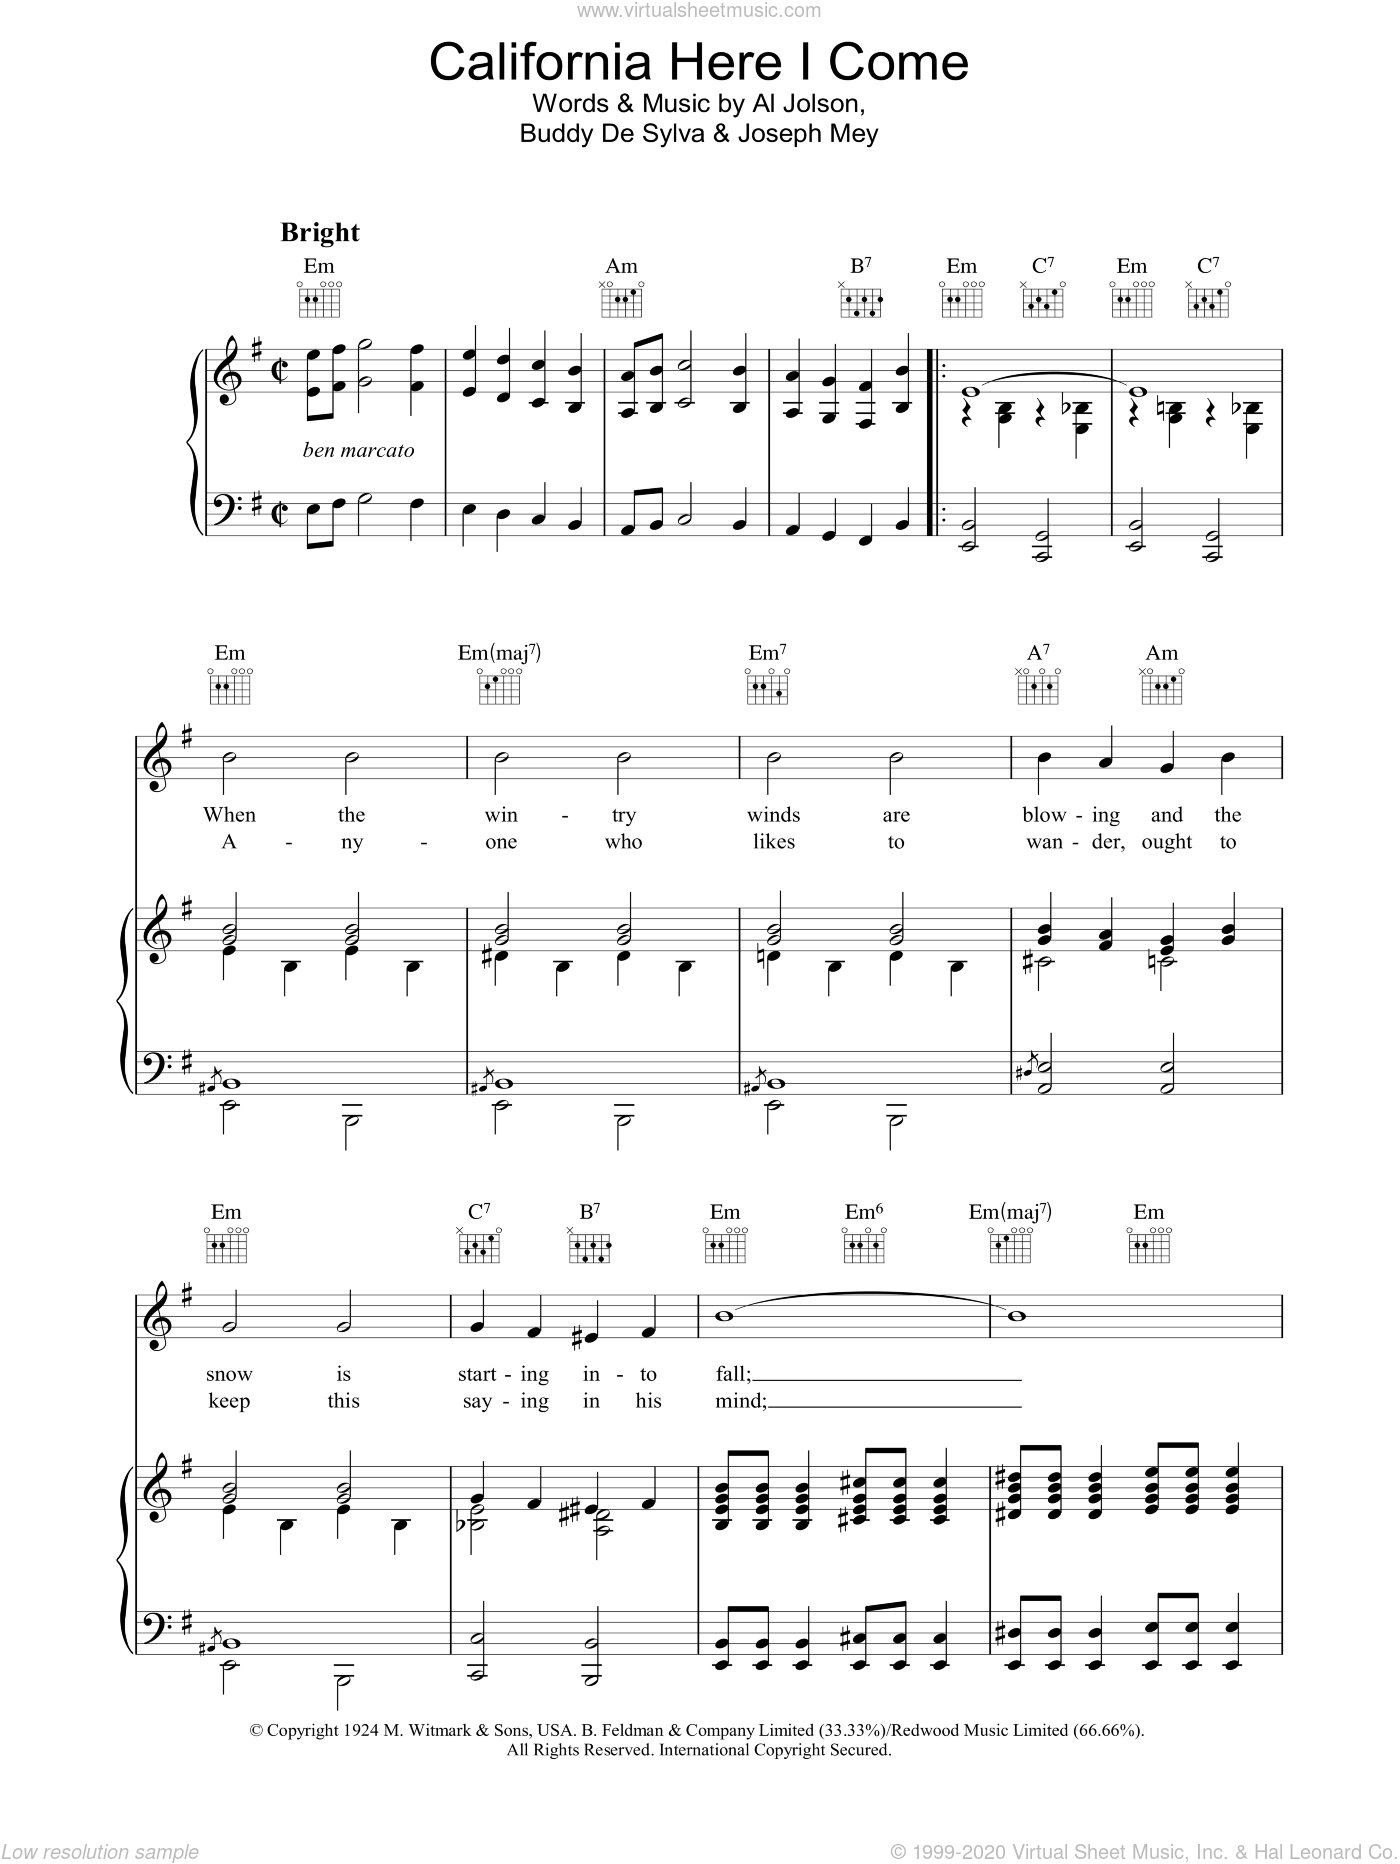 California Here I Come sheet music for voice, piano or guitar by Joseph Meyer